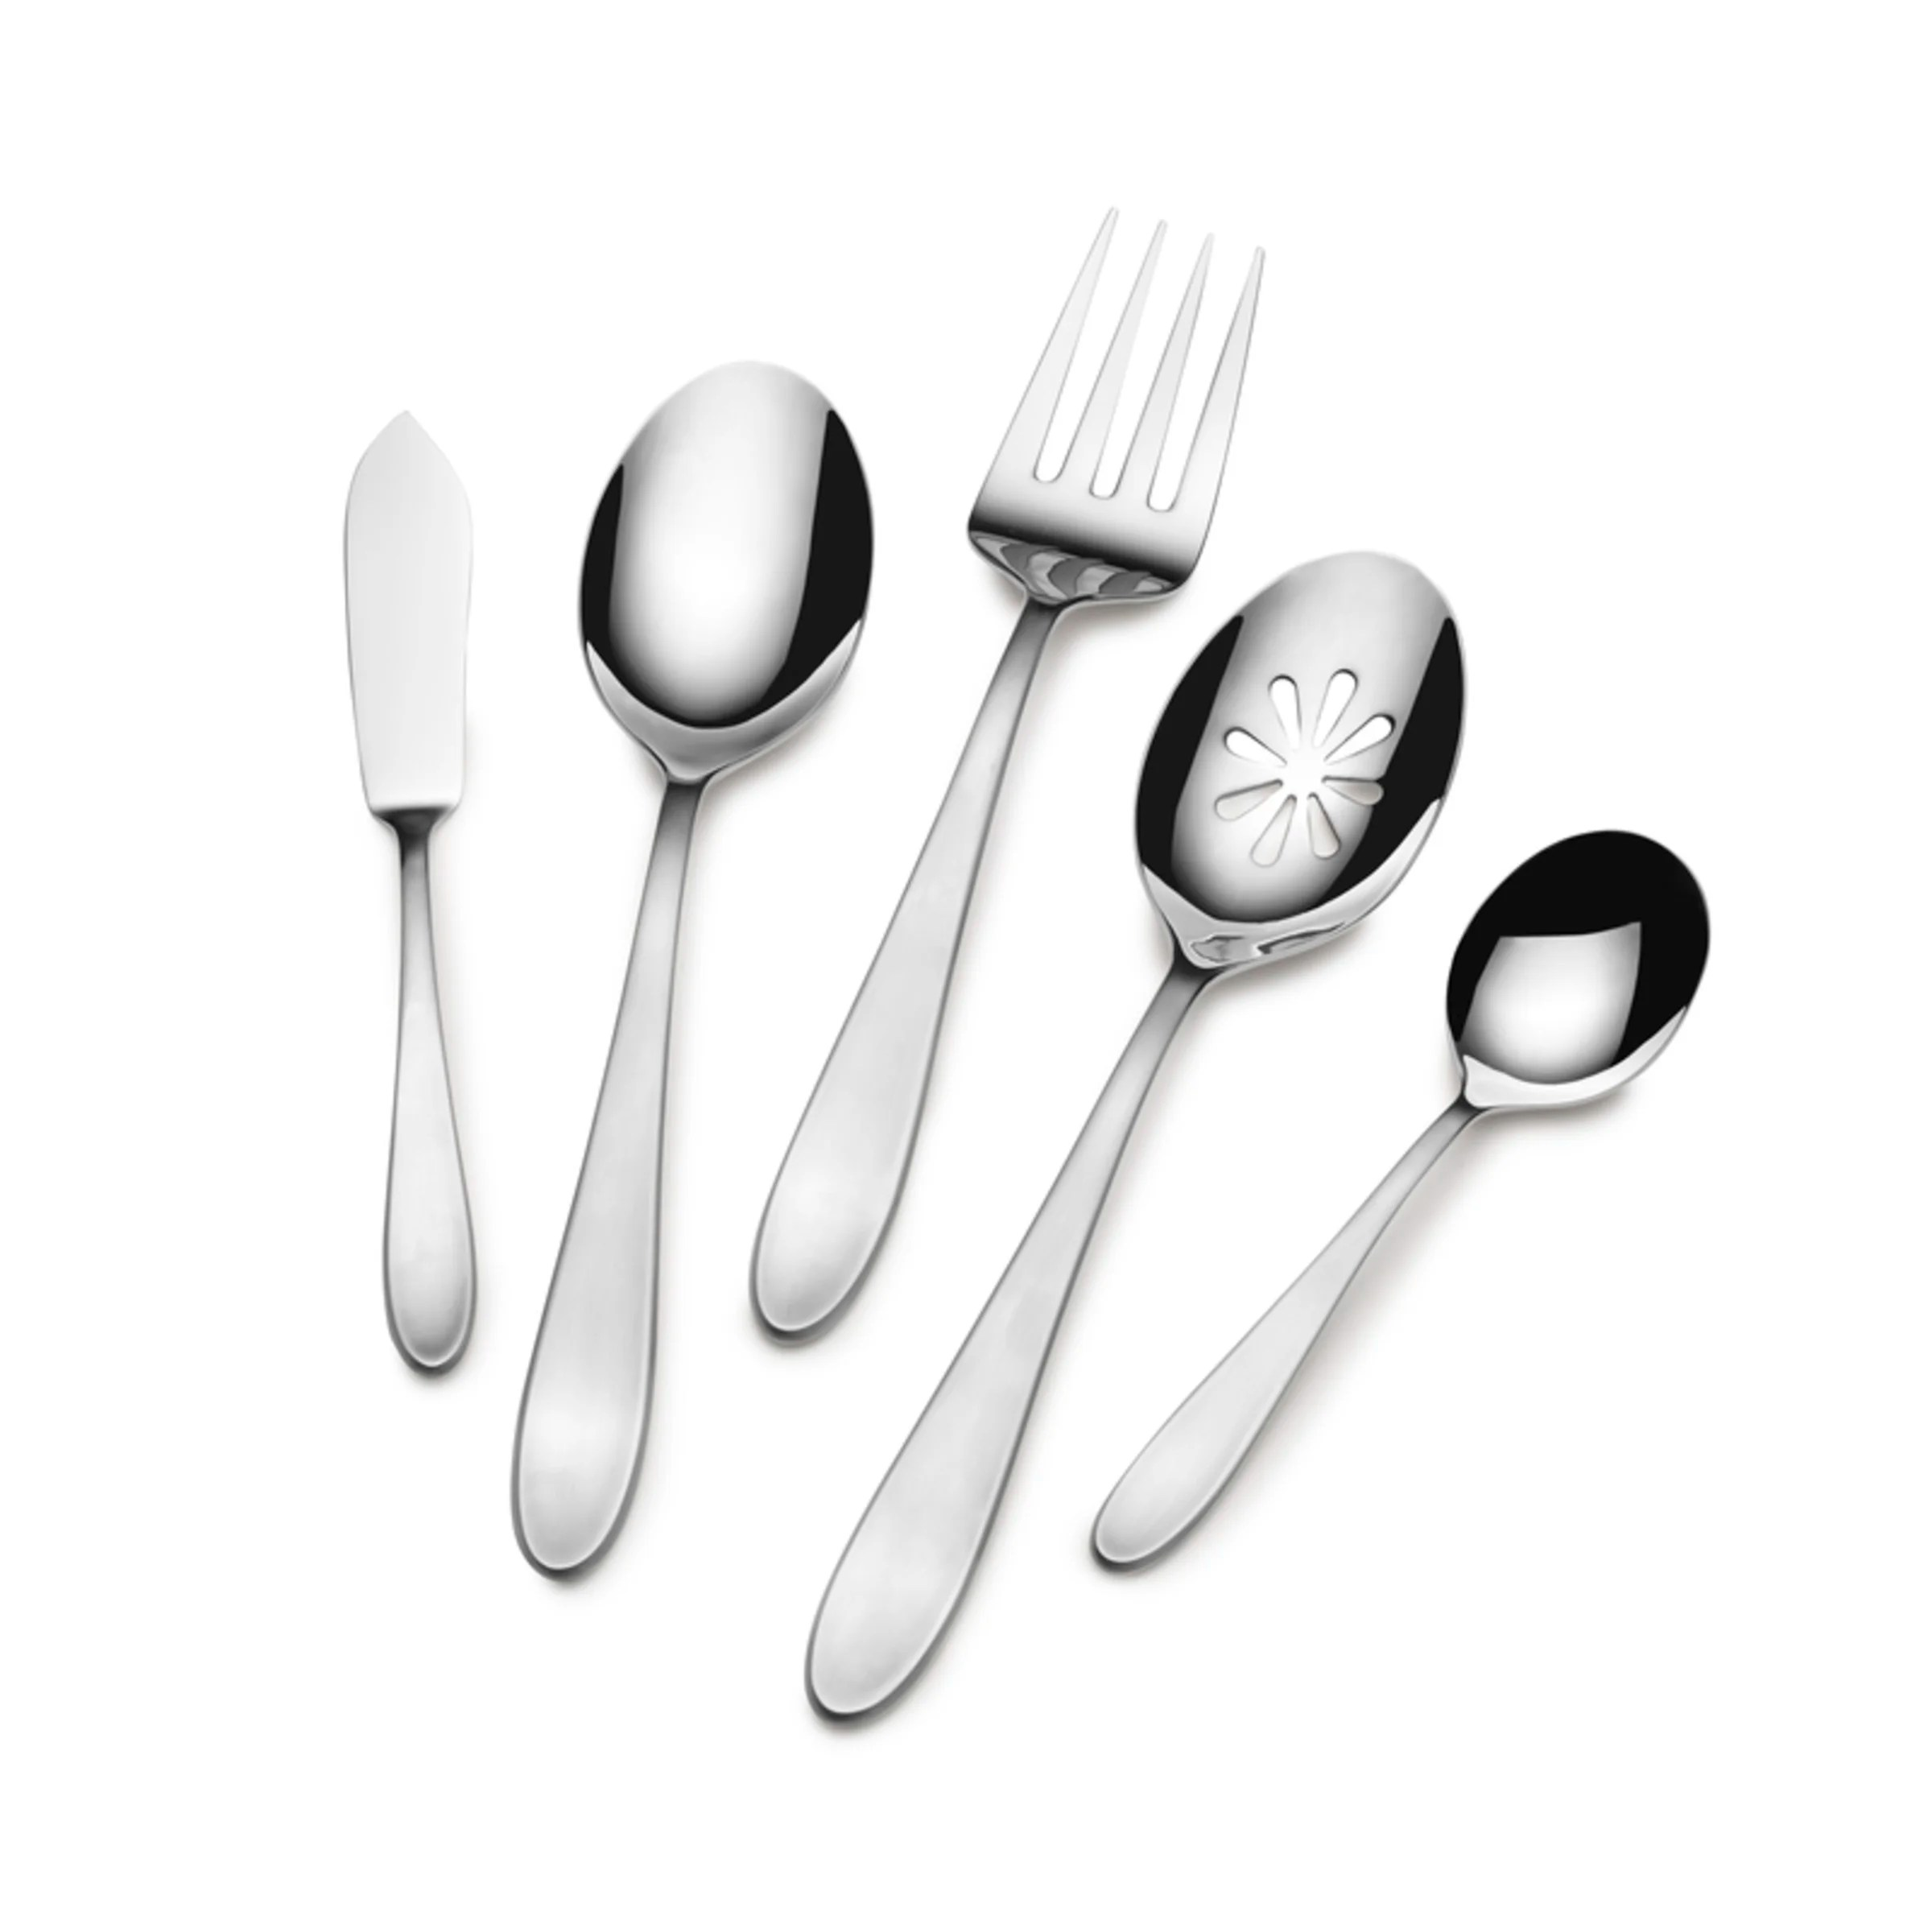 Discount Stainless Flatware Prescott Satin 22 Piece 18 10 Stainless Steel Flatware Set